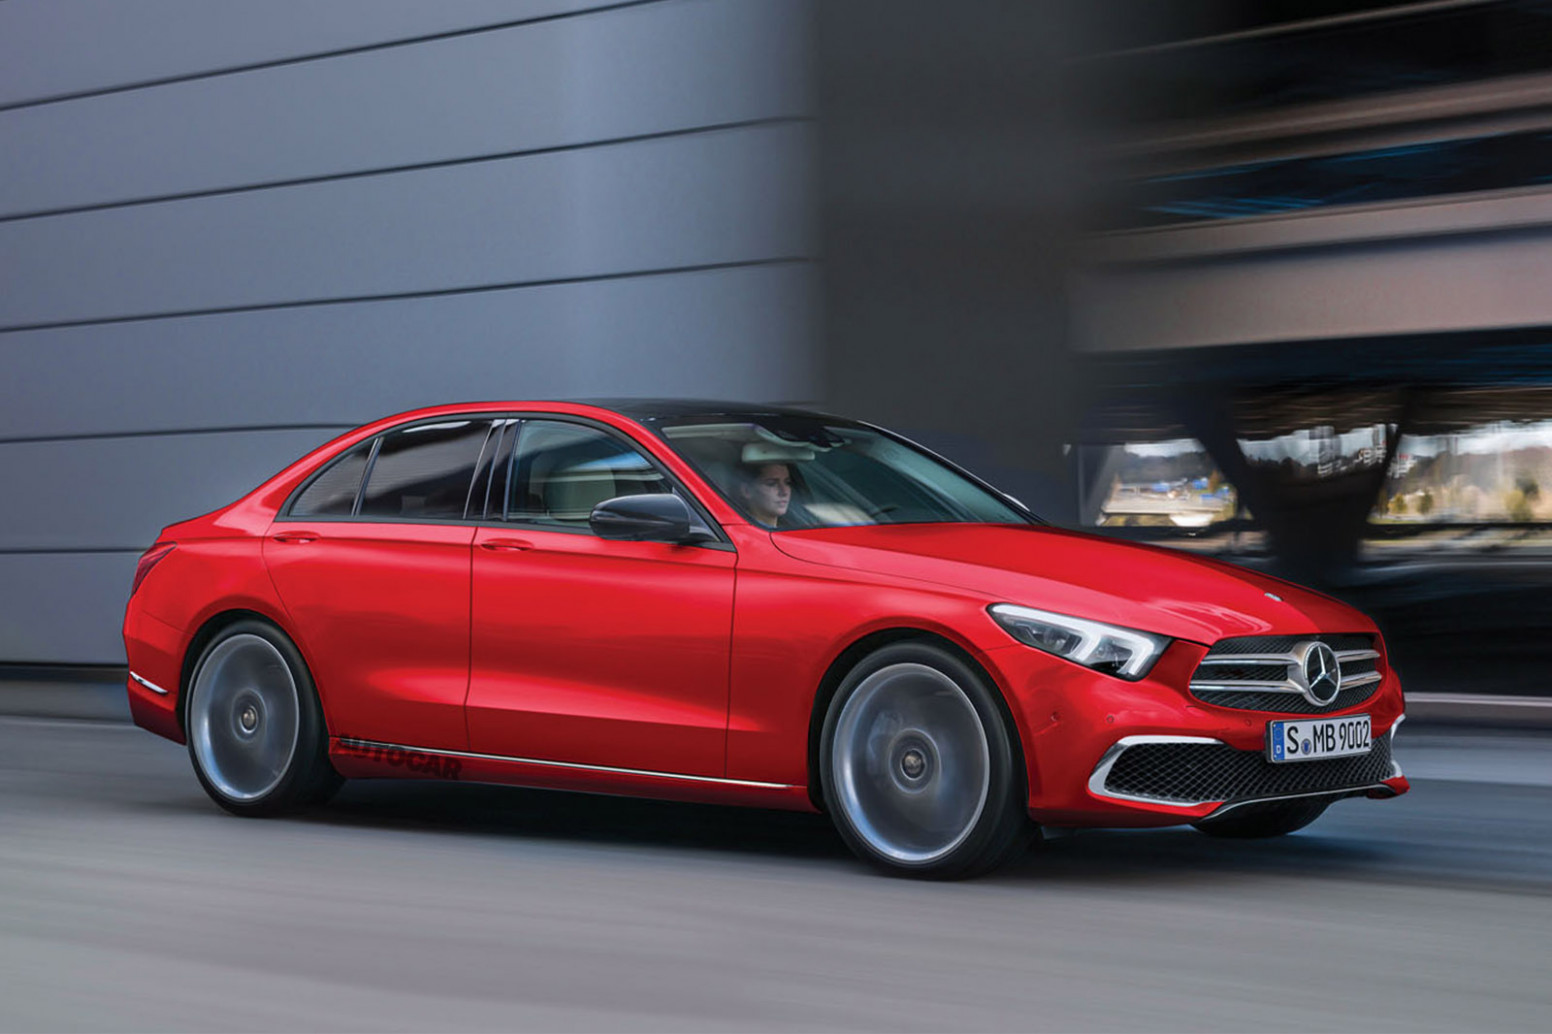 Reviews 2022 Mercedes E-Class